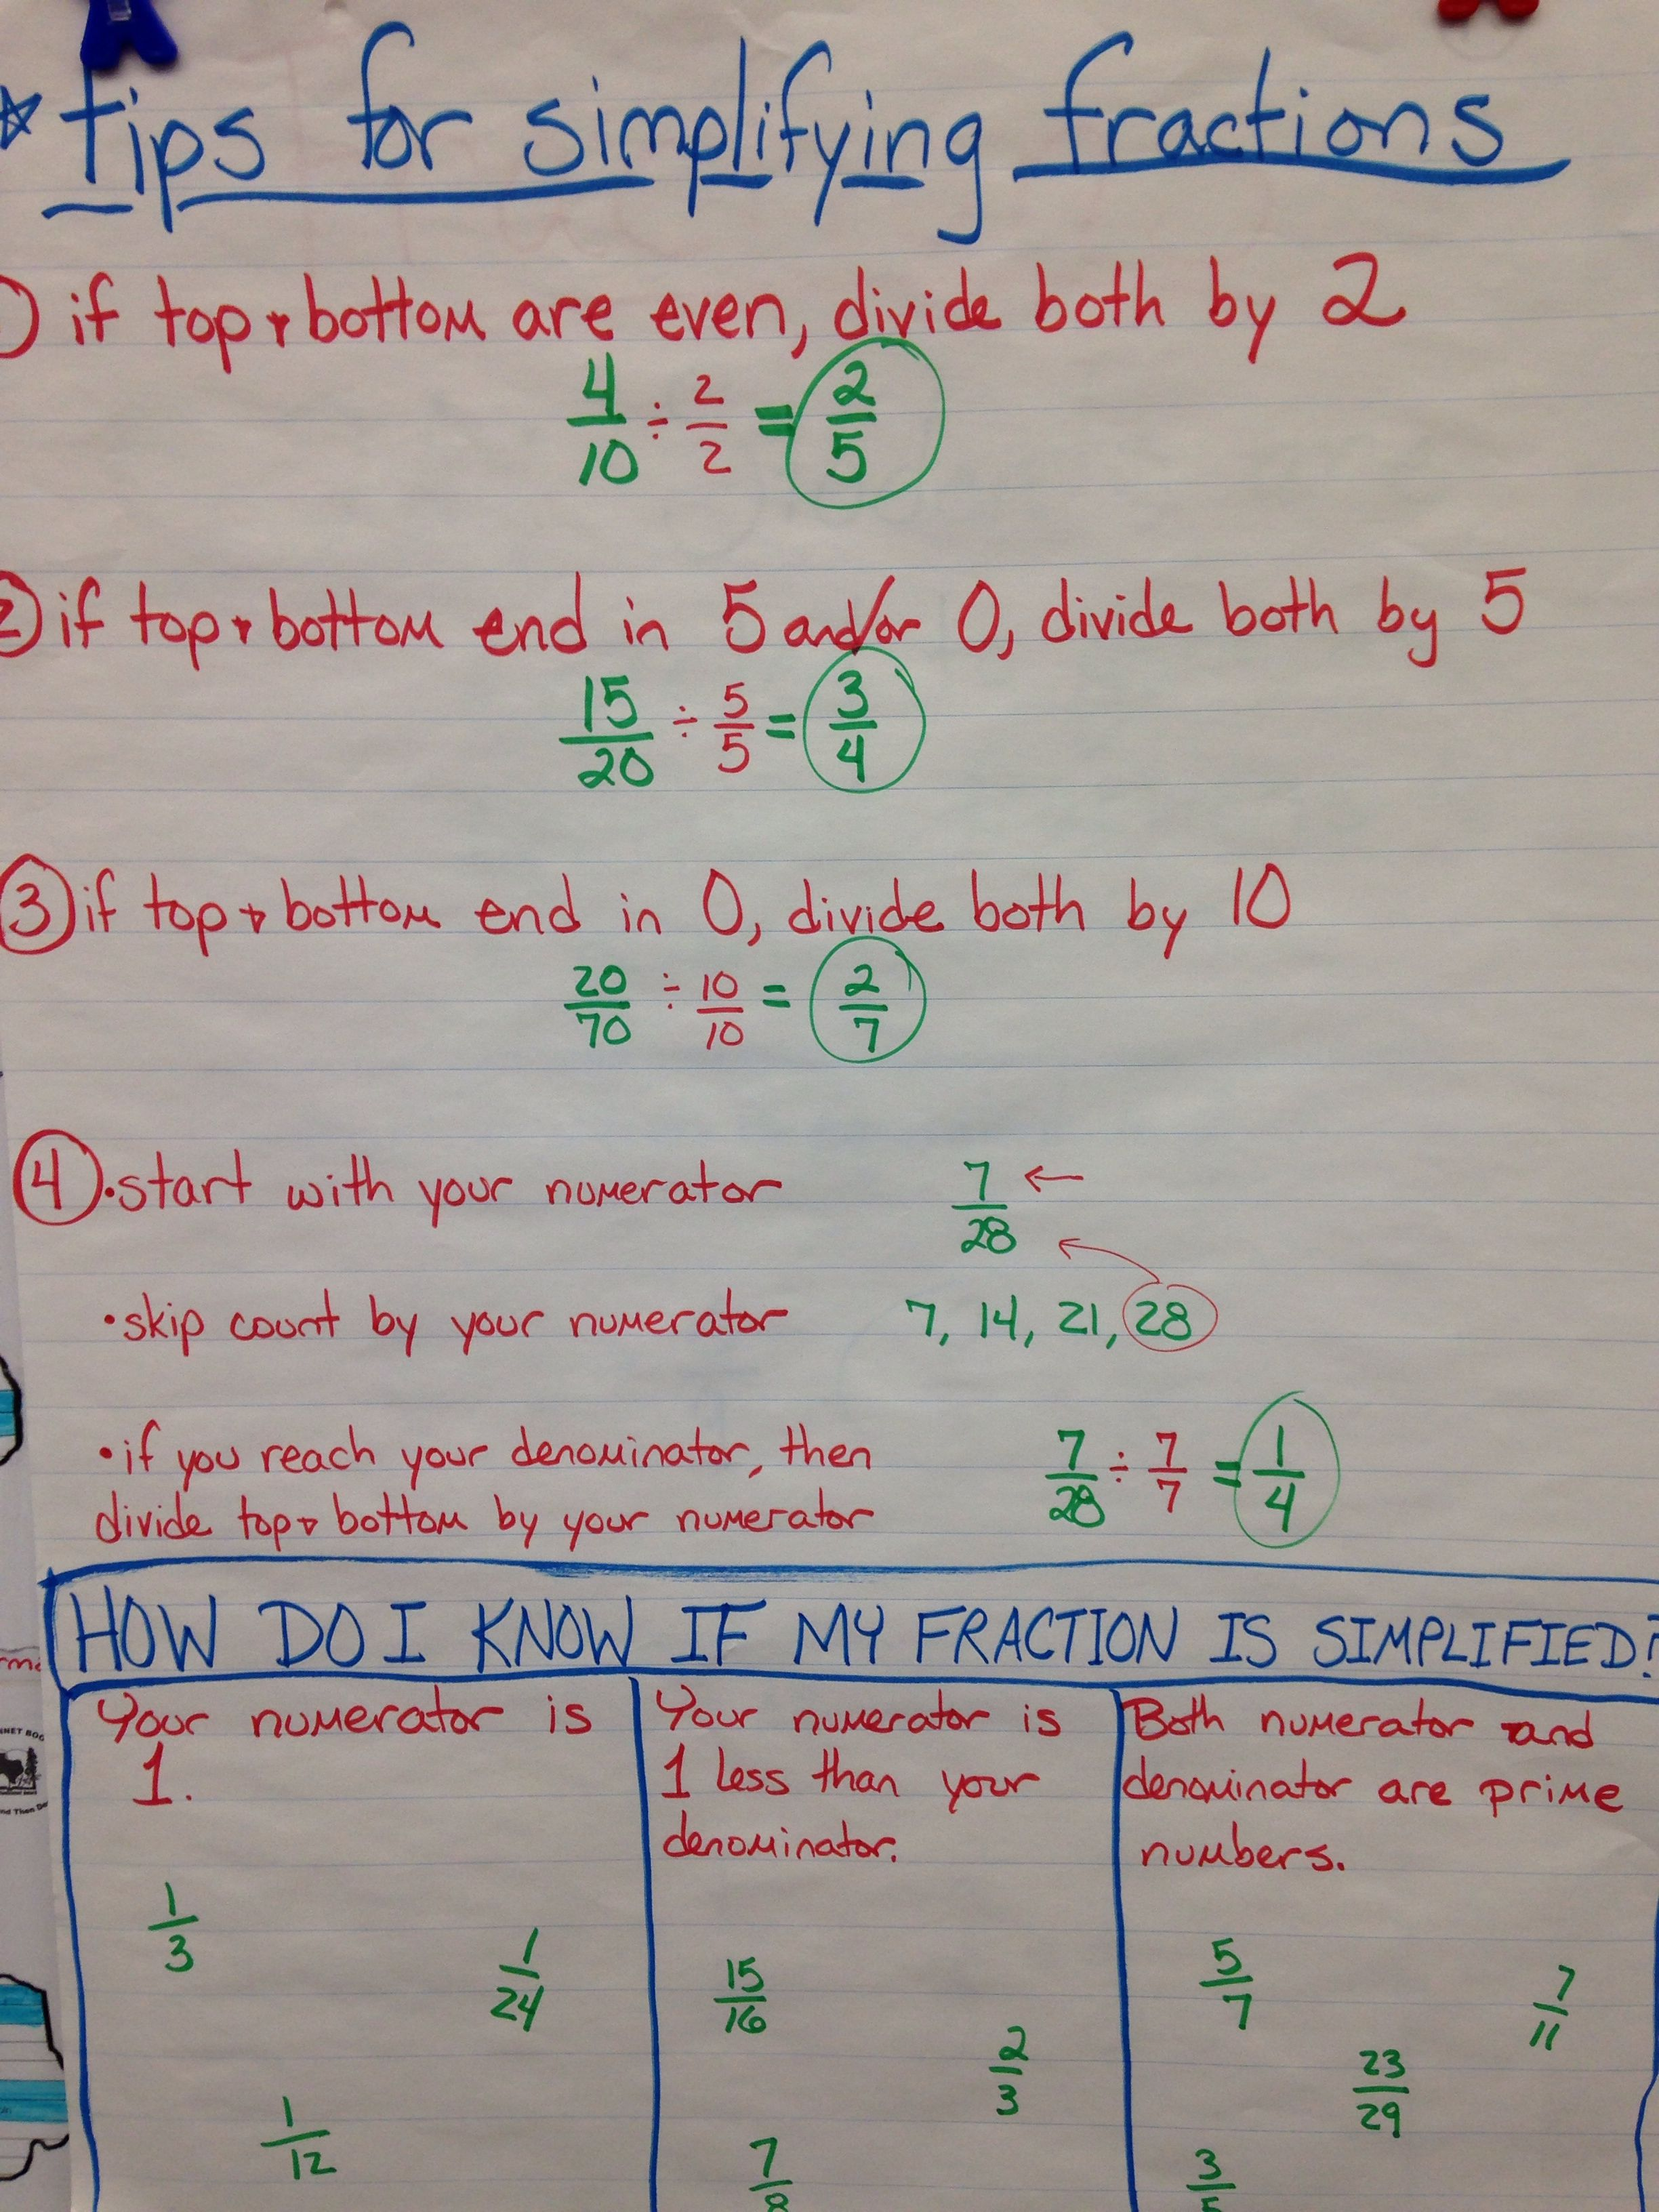 anchor chart for simplifying fractions- doesn't work 100% of the